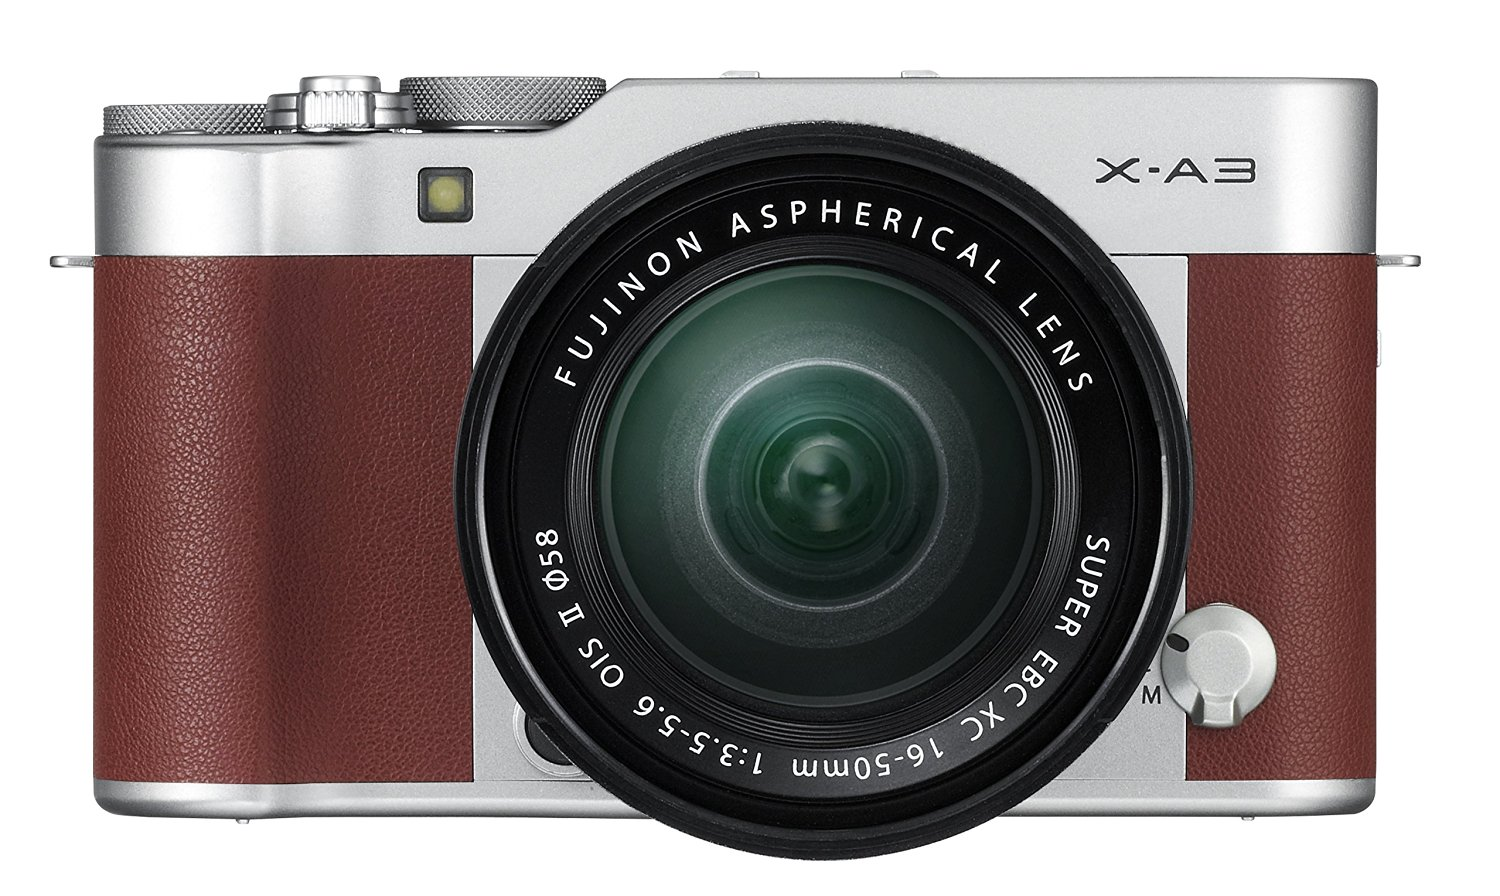 Fujifilm X-A3 Mirrorless Camera | $599.95